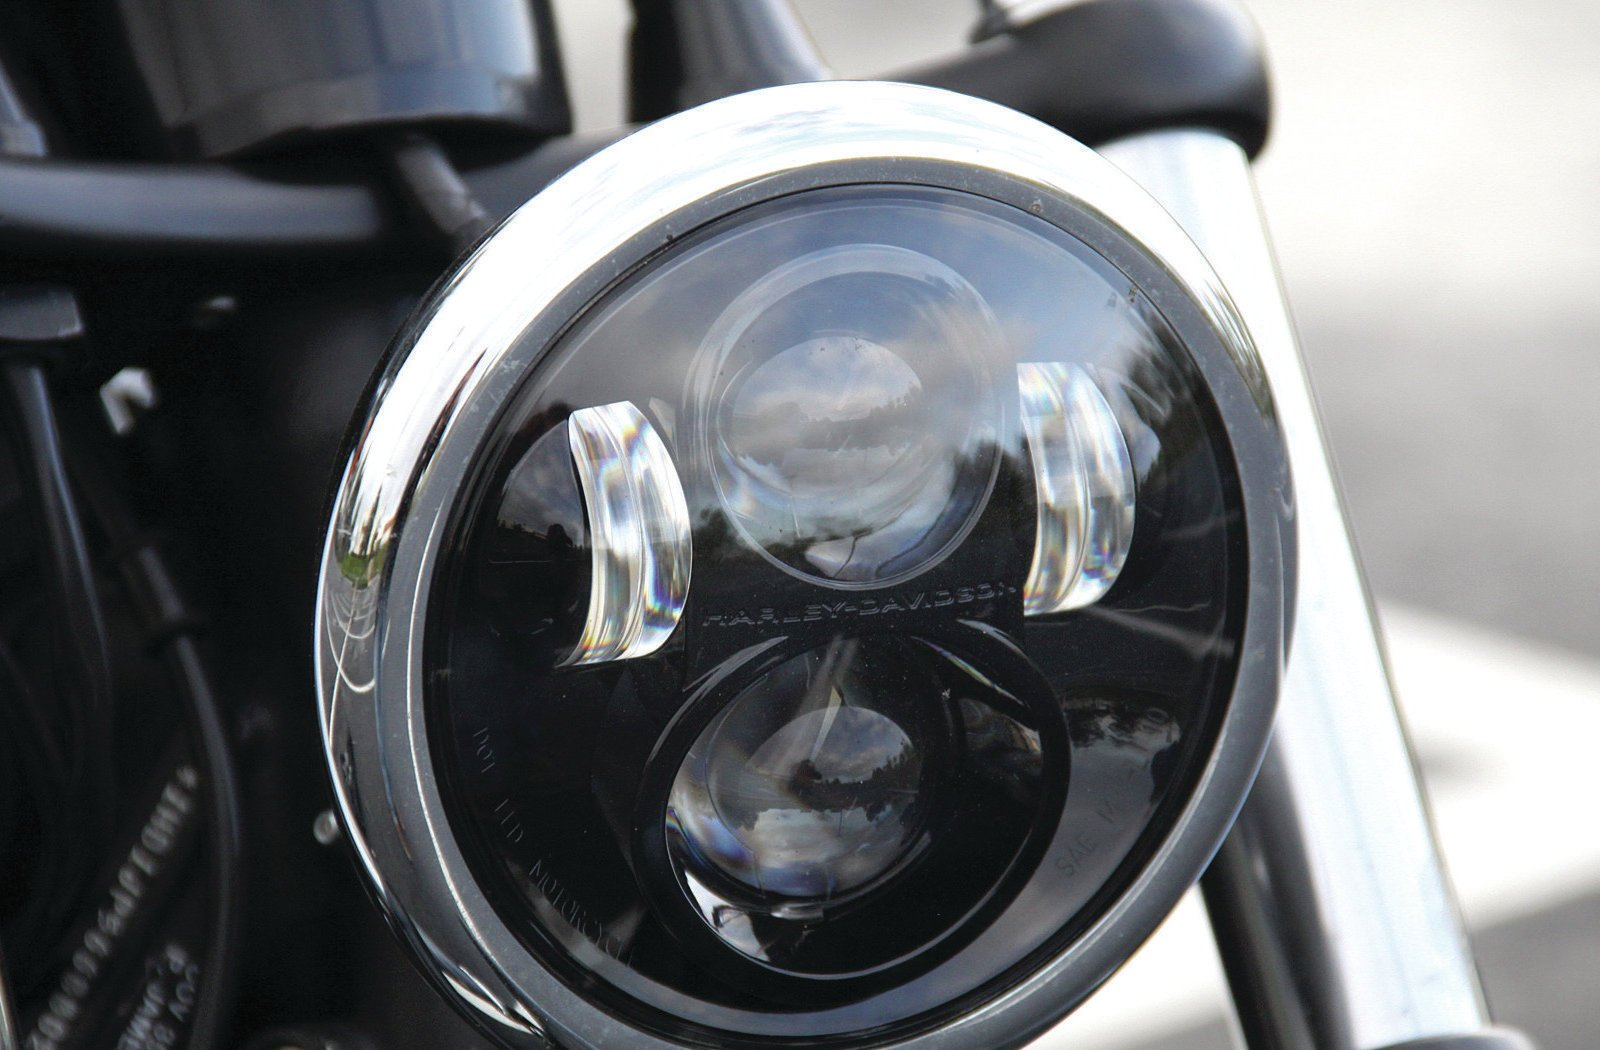 Harley Davidson Daymaker Led Headlights Autoevolution